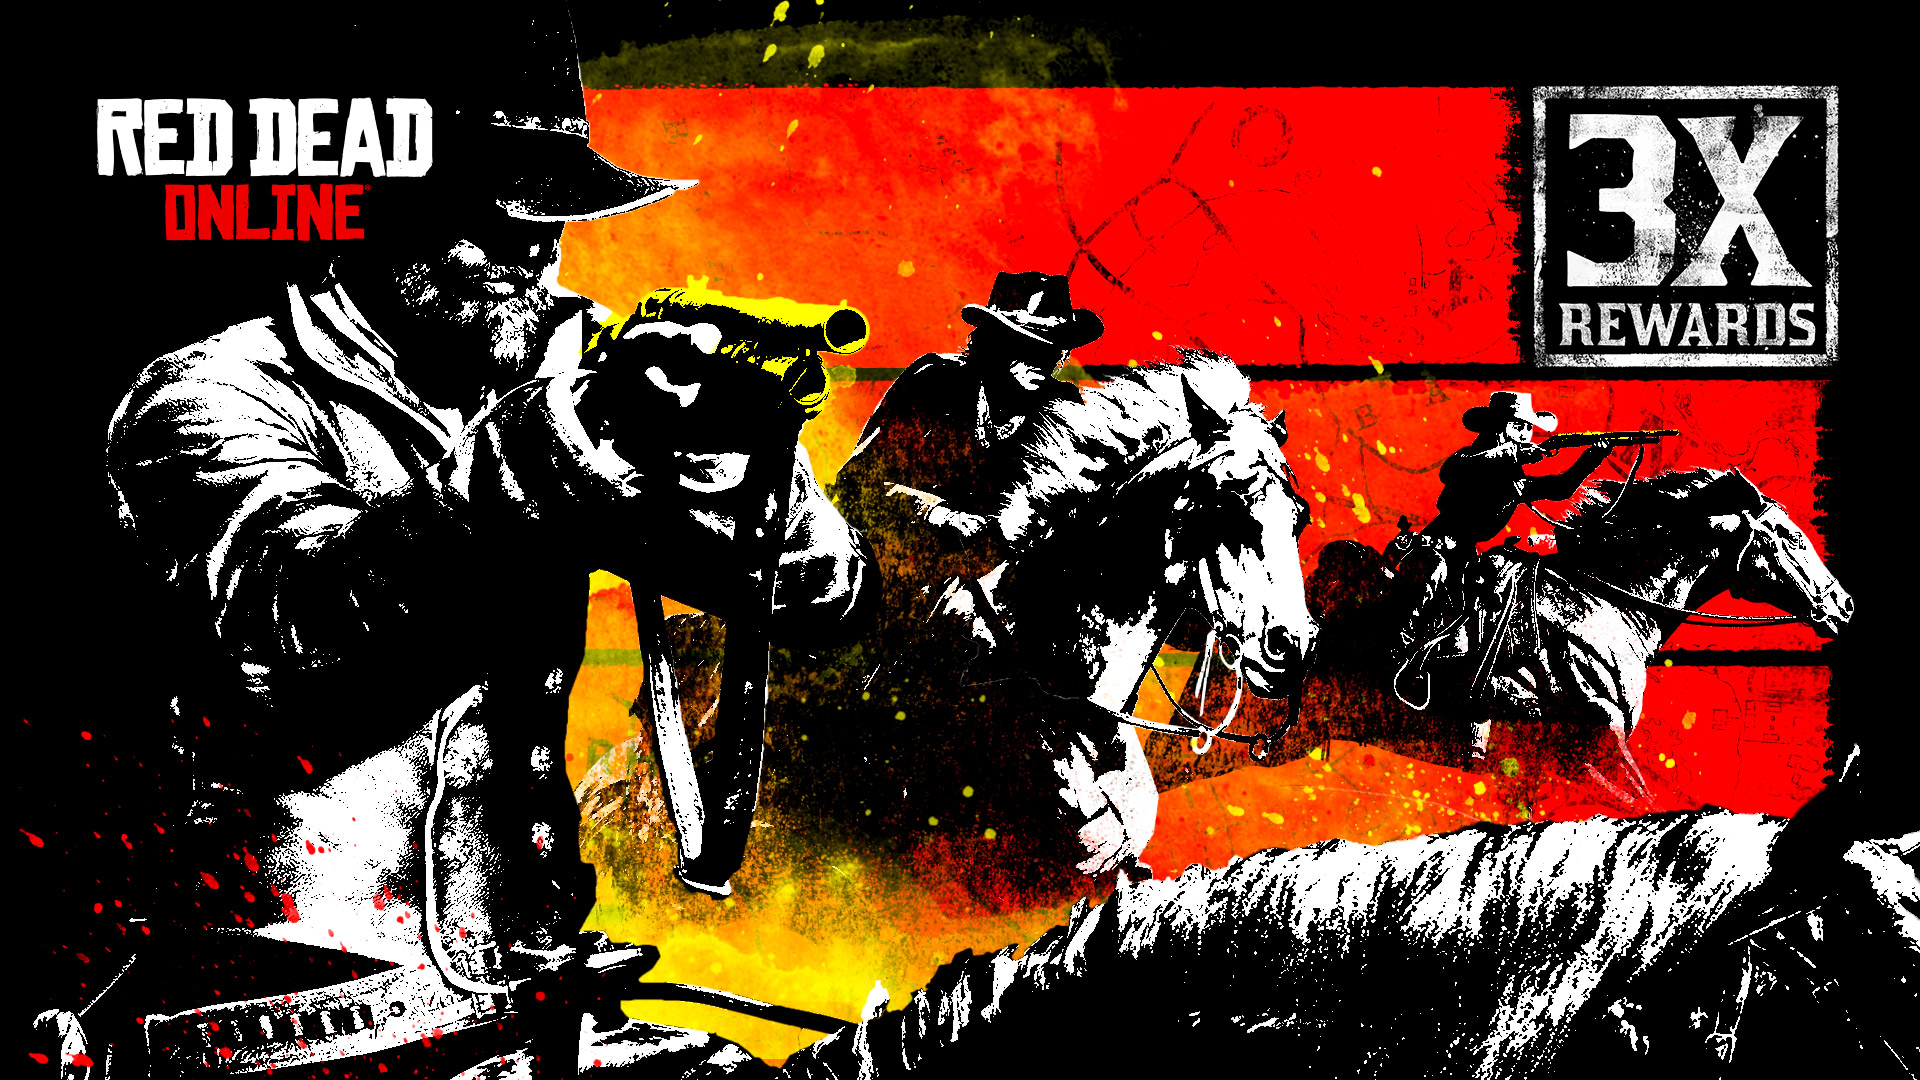 red-dead-online-artwork-40-hd.jpg